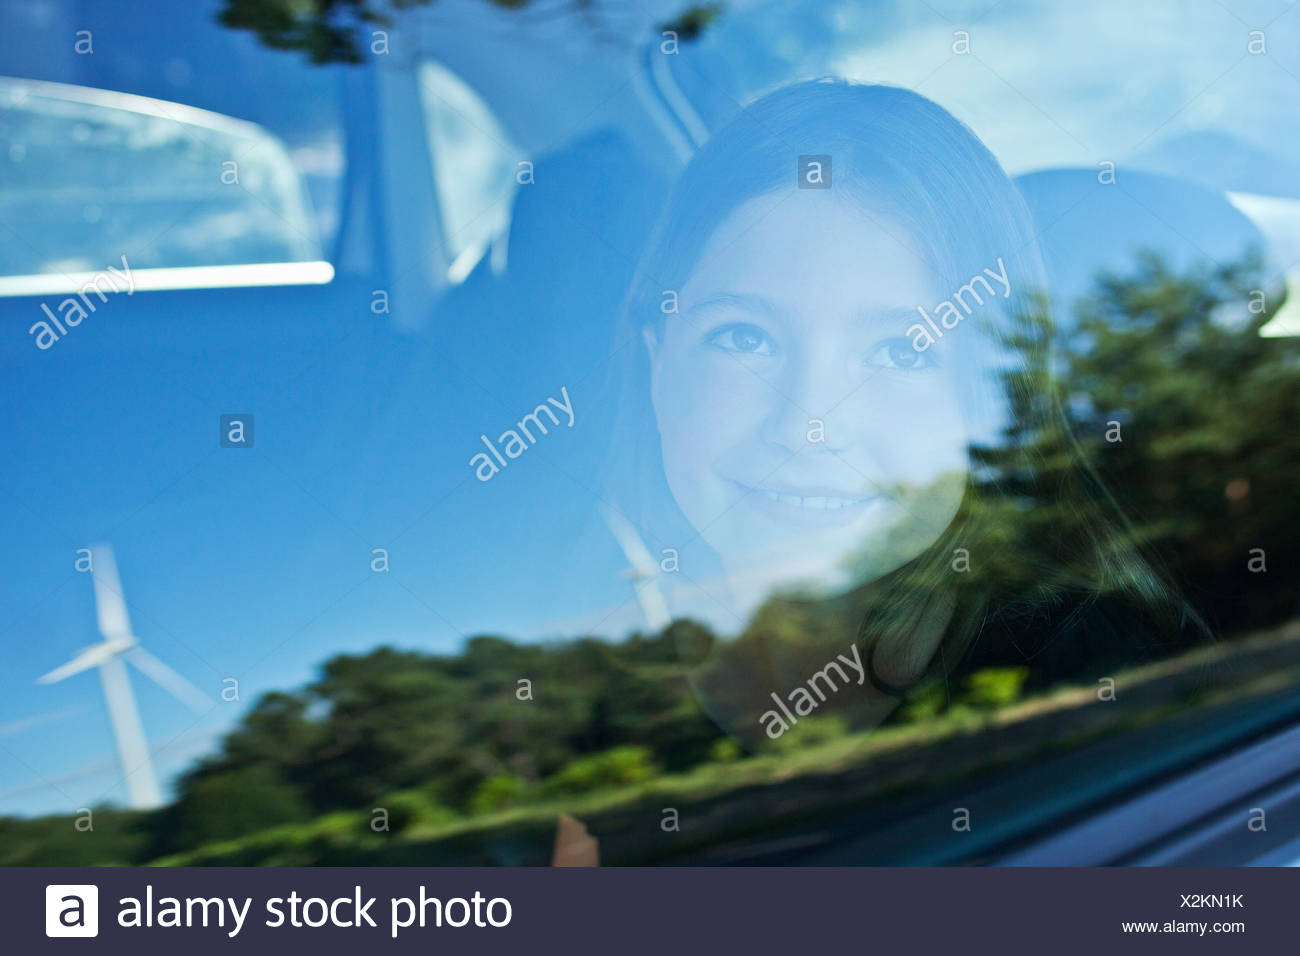 Wind turbines reflected in car window - Stock Image